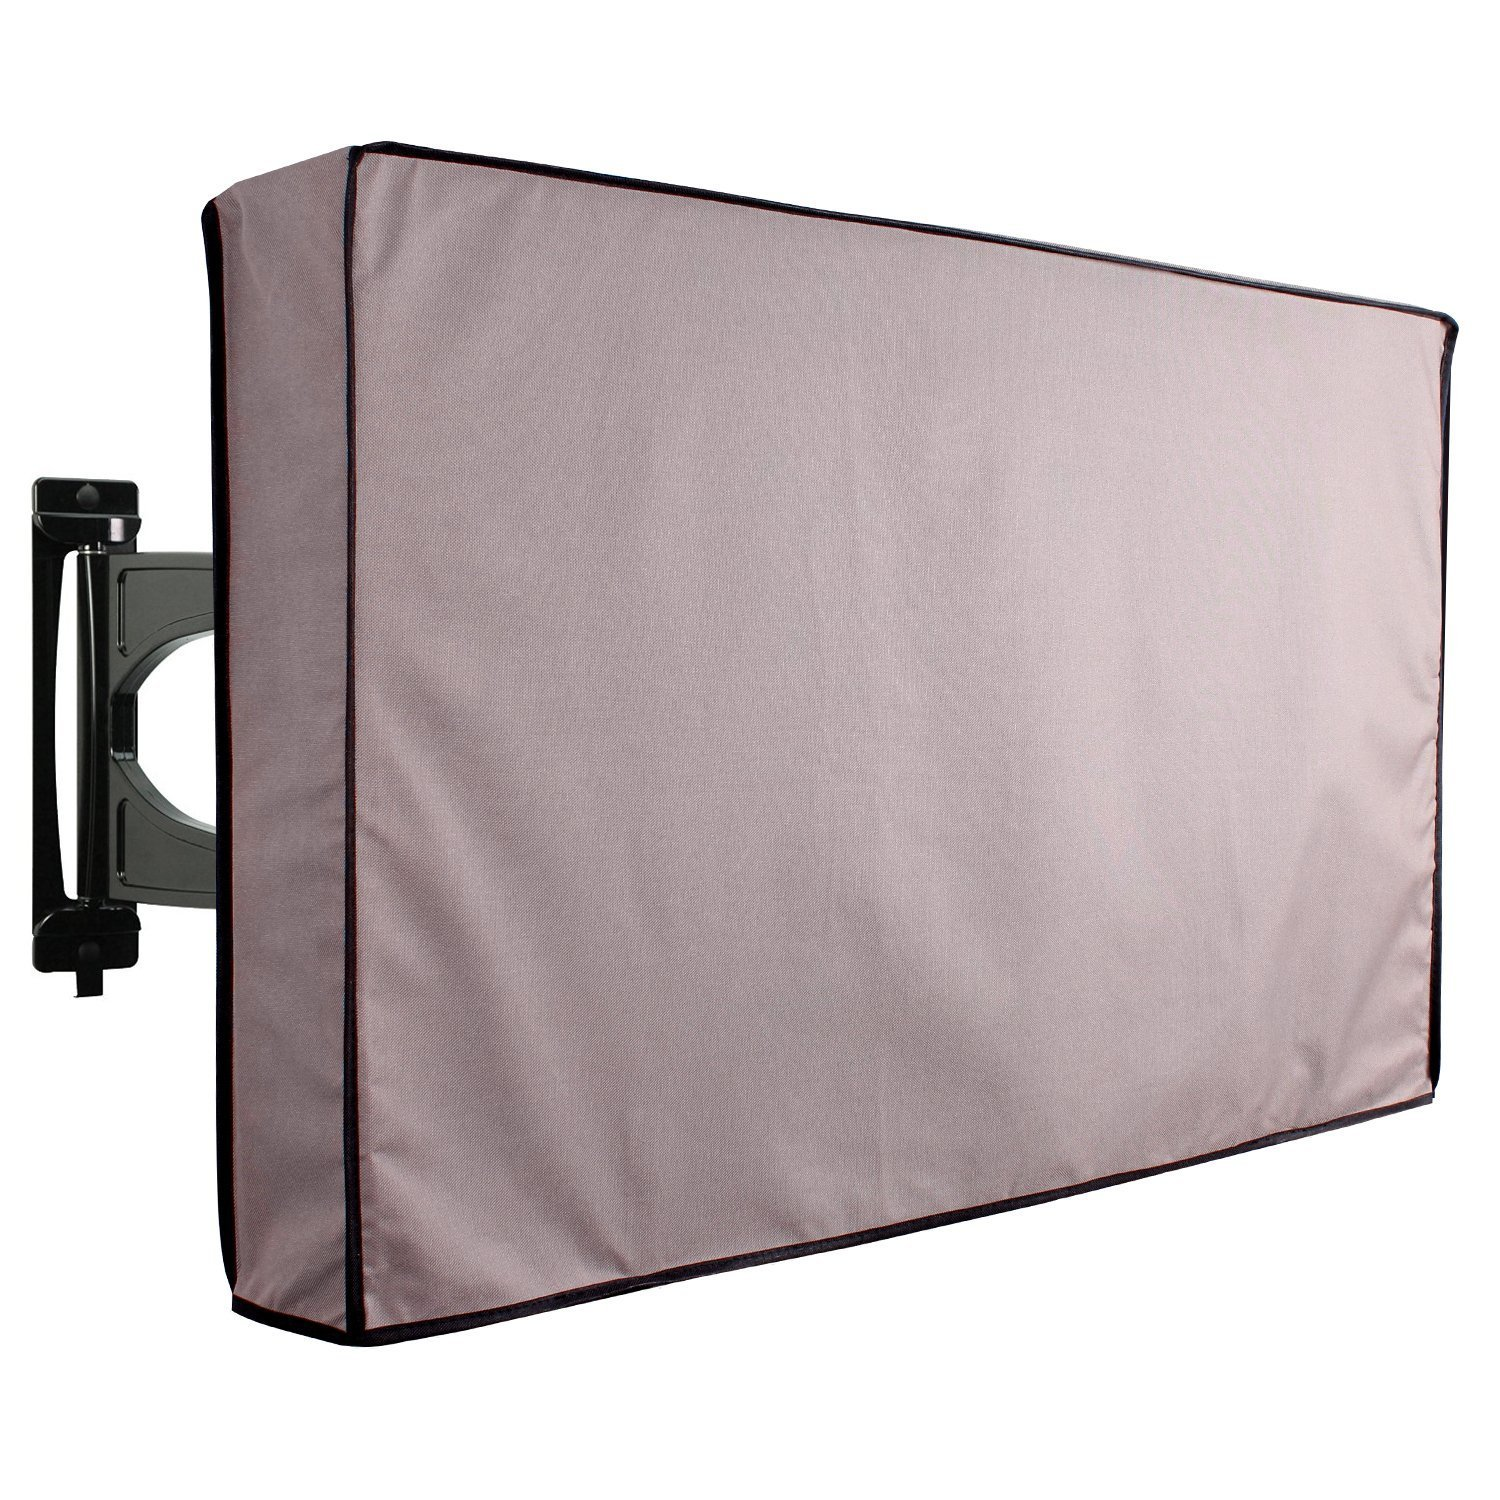 KHOMO GEAR Outdoor TV Cover - Titan Series - Universal Weatherproof Protector for 46 - 48 Inch TV - Fits Most Mounts & Brackets by KHOMO GEAR